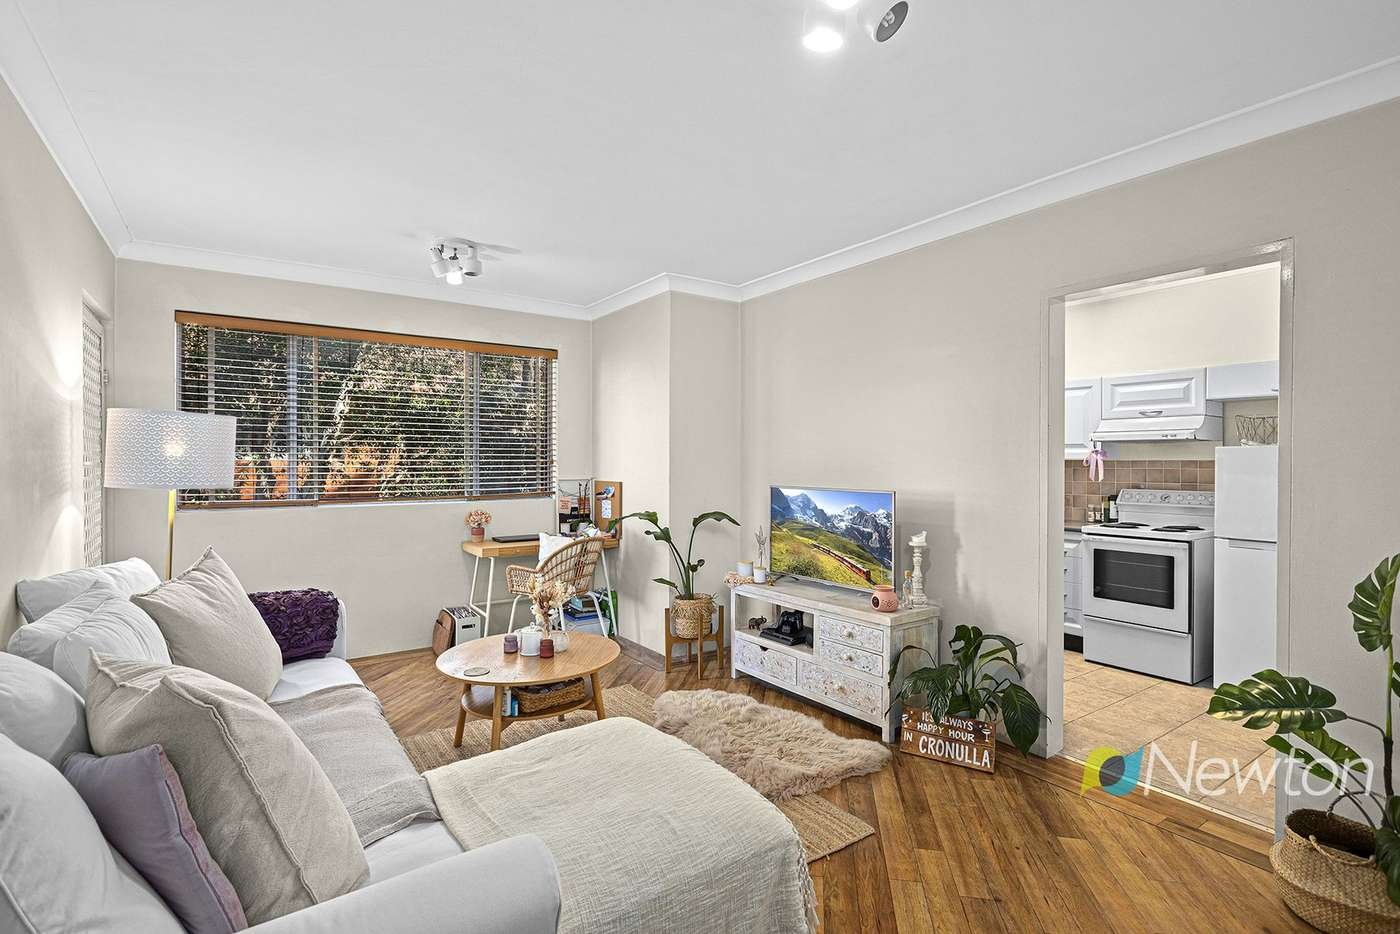 Main view of Homely apartment listing, 2/31-33 Girrilang Road, Cronulla NSW 2230